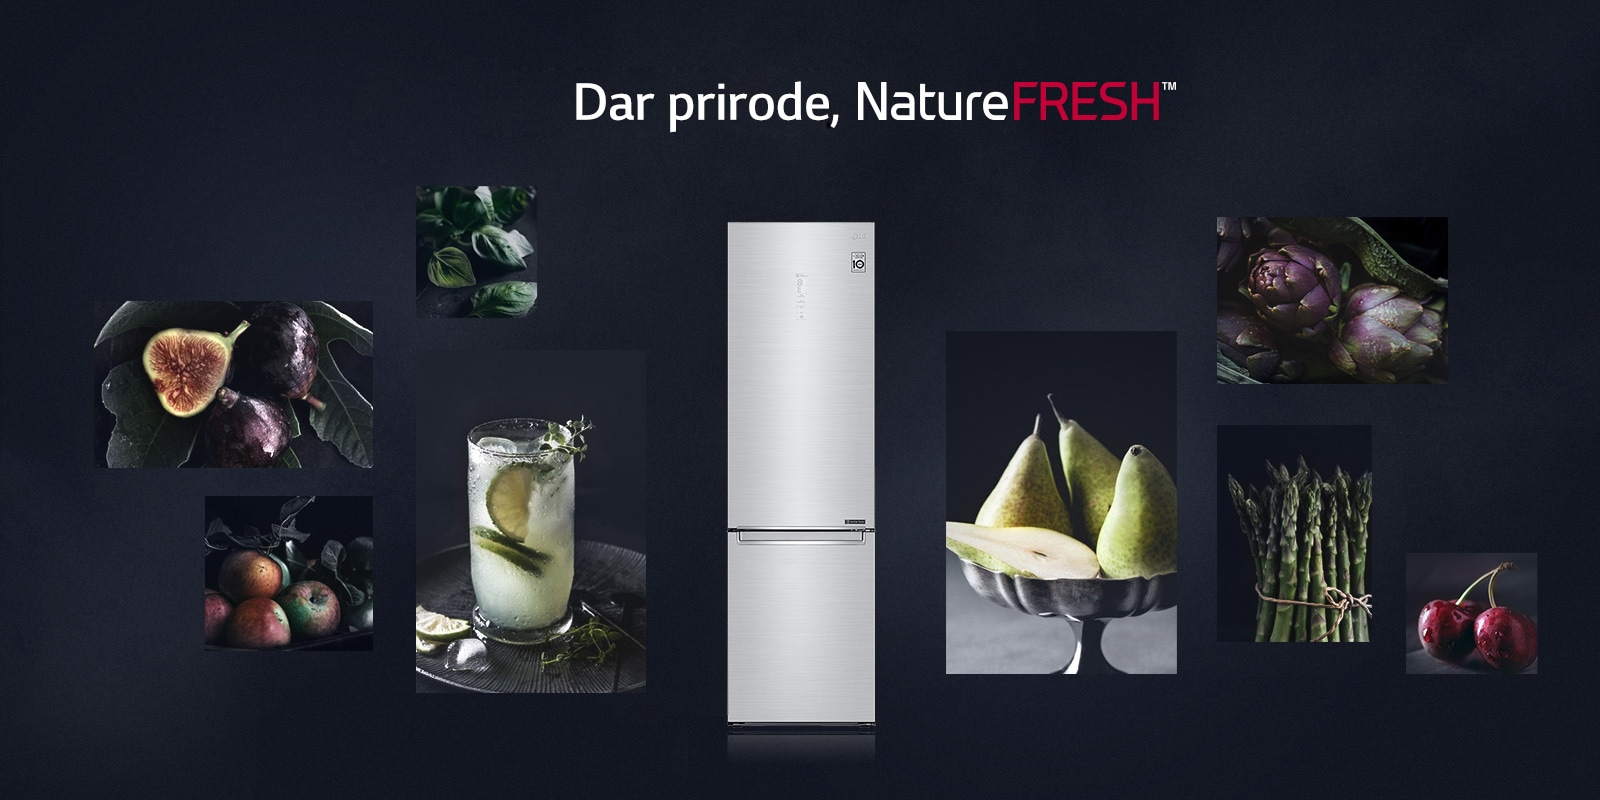 REF-NatureFRESH-Vplus-HeroBanner-Desktop